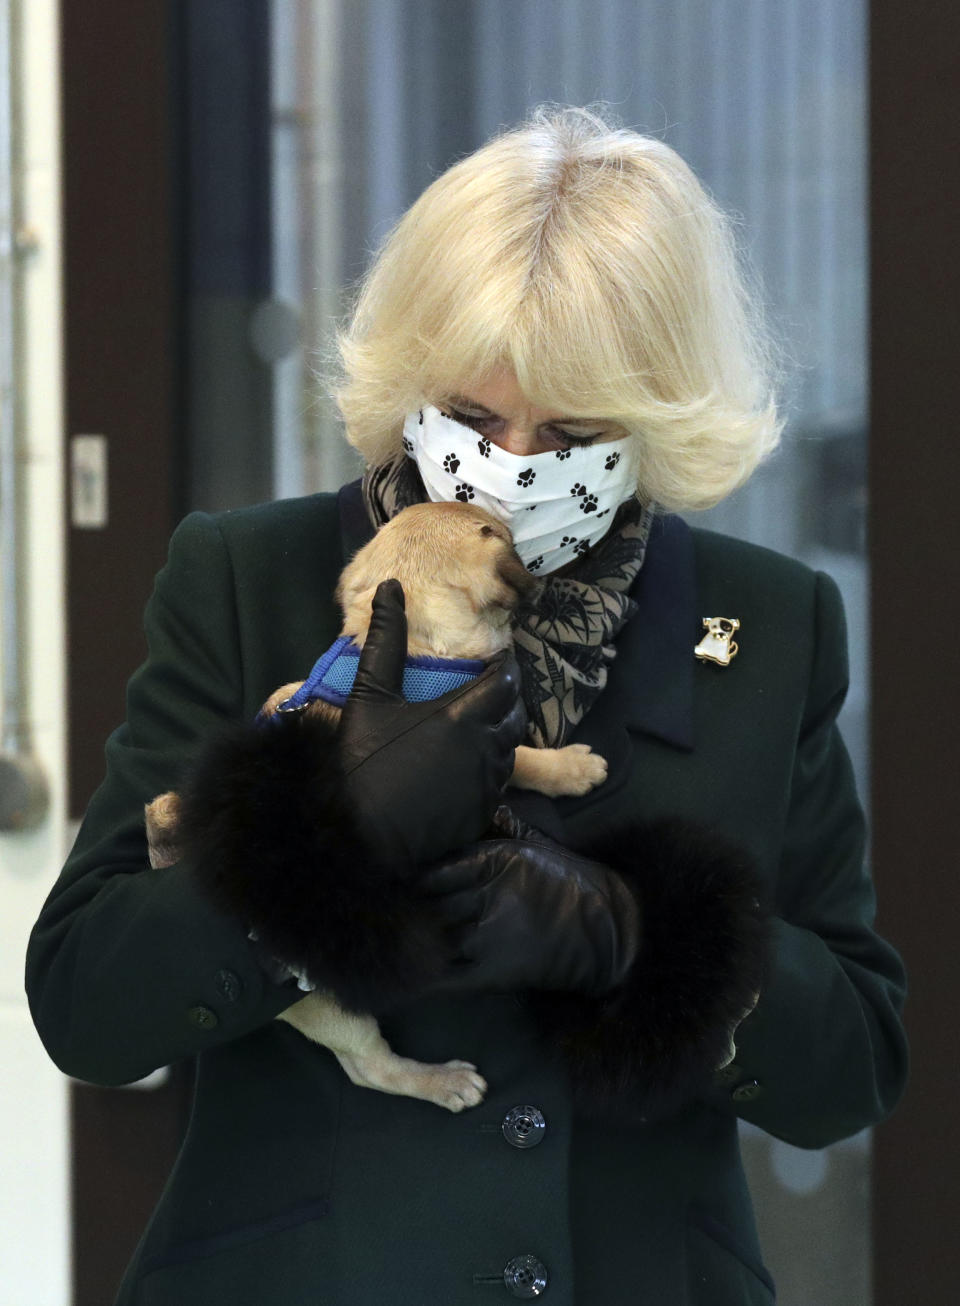 WINDSOR, ENGLAND - DECEMBER 09: Camilla, Duchess of Cornwall meets a Pug Puppy called Ernie as she visits the Battersea Dogs and Cats Home to open the new kennels and thank the centre's staff and supporters on December 9, 2020 in Windsor, United Kingdom. (Photo by Steve Parsons - WPA Pool/Getty Images)